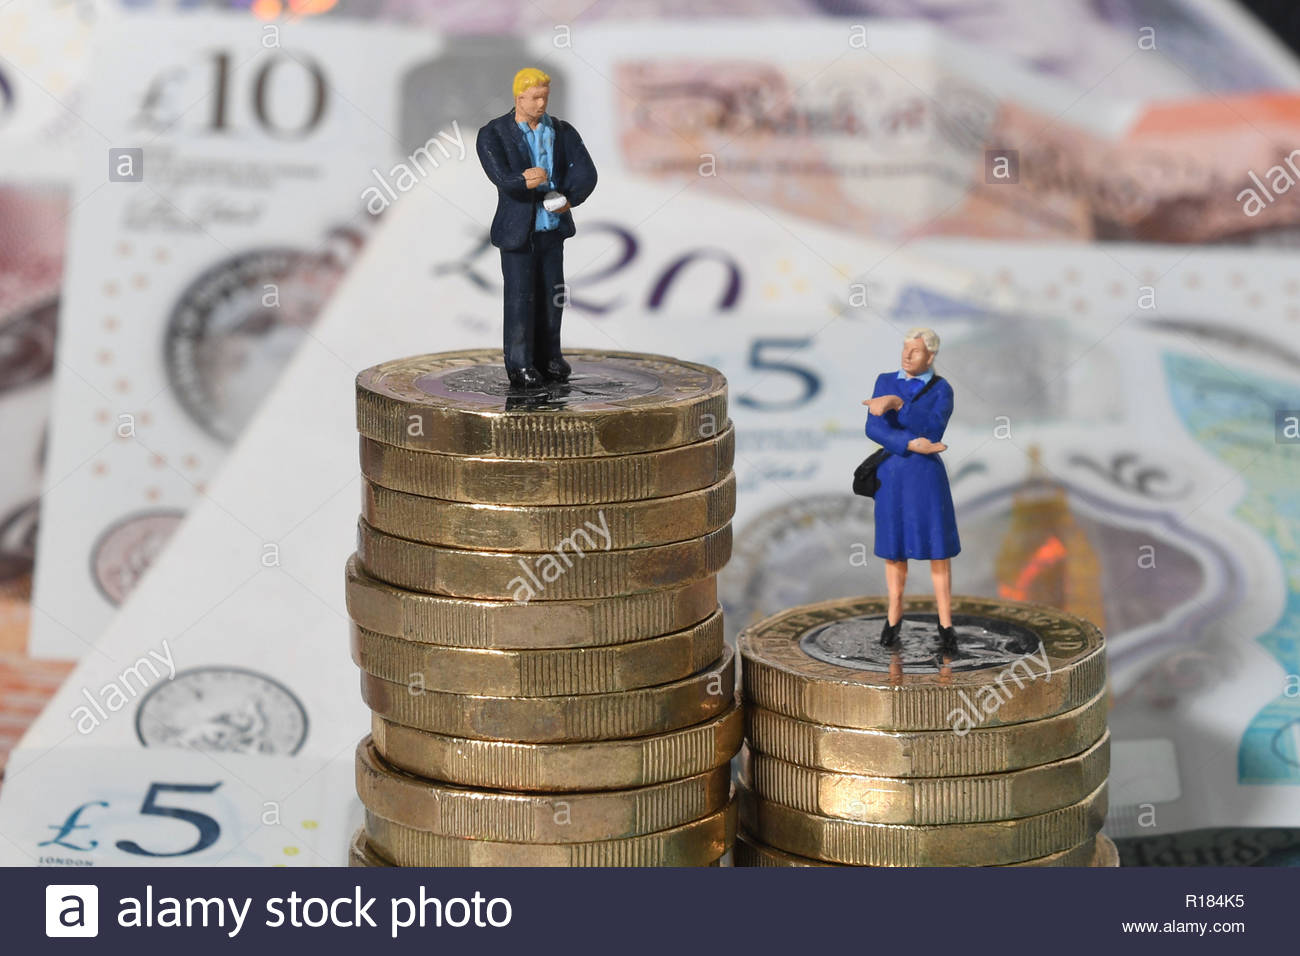 File photo dated 11/09/18 of models of a man and woman on a pile of coins and bank notes. Calls for more action to tackle the gender pay gap are being stepped up amid new research showing that women are more likely to be in low paid jobs. - Stock Image